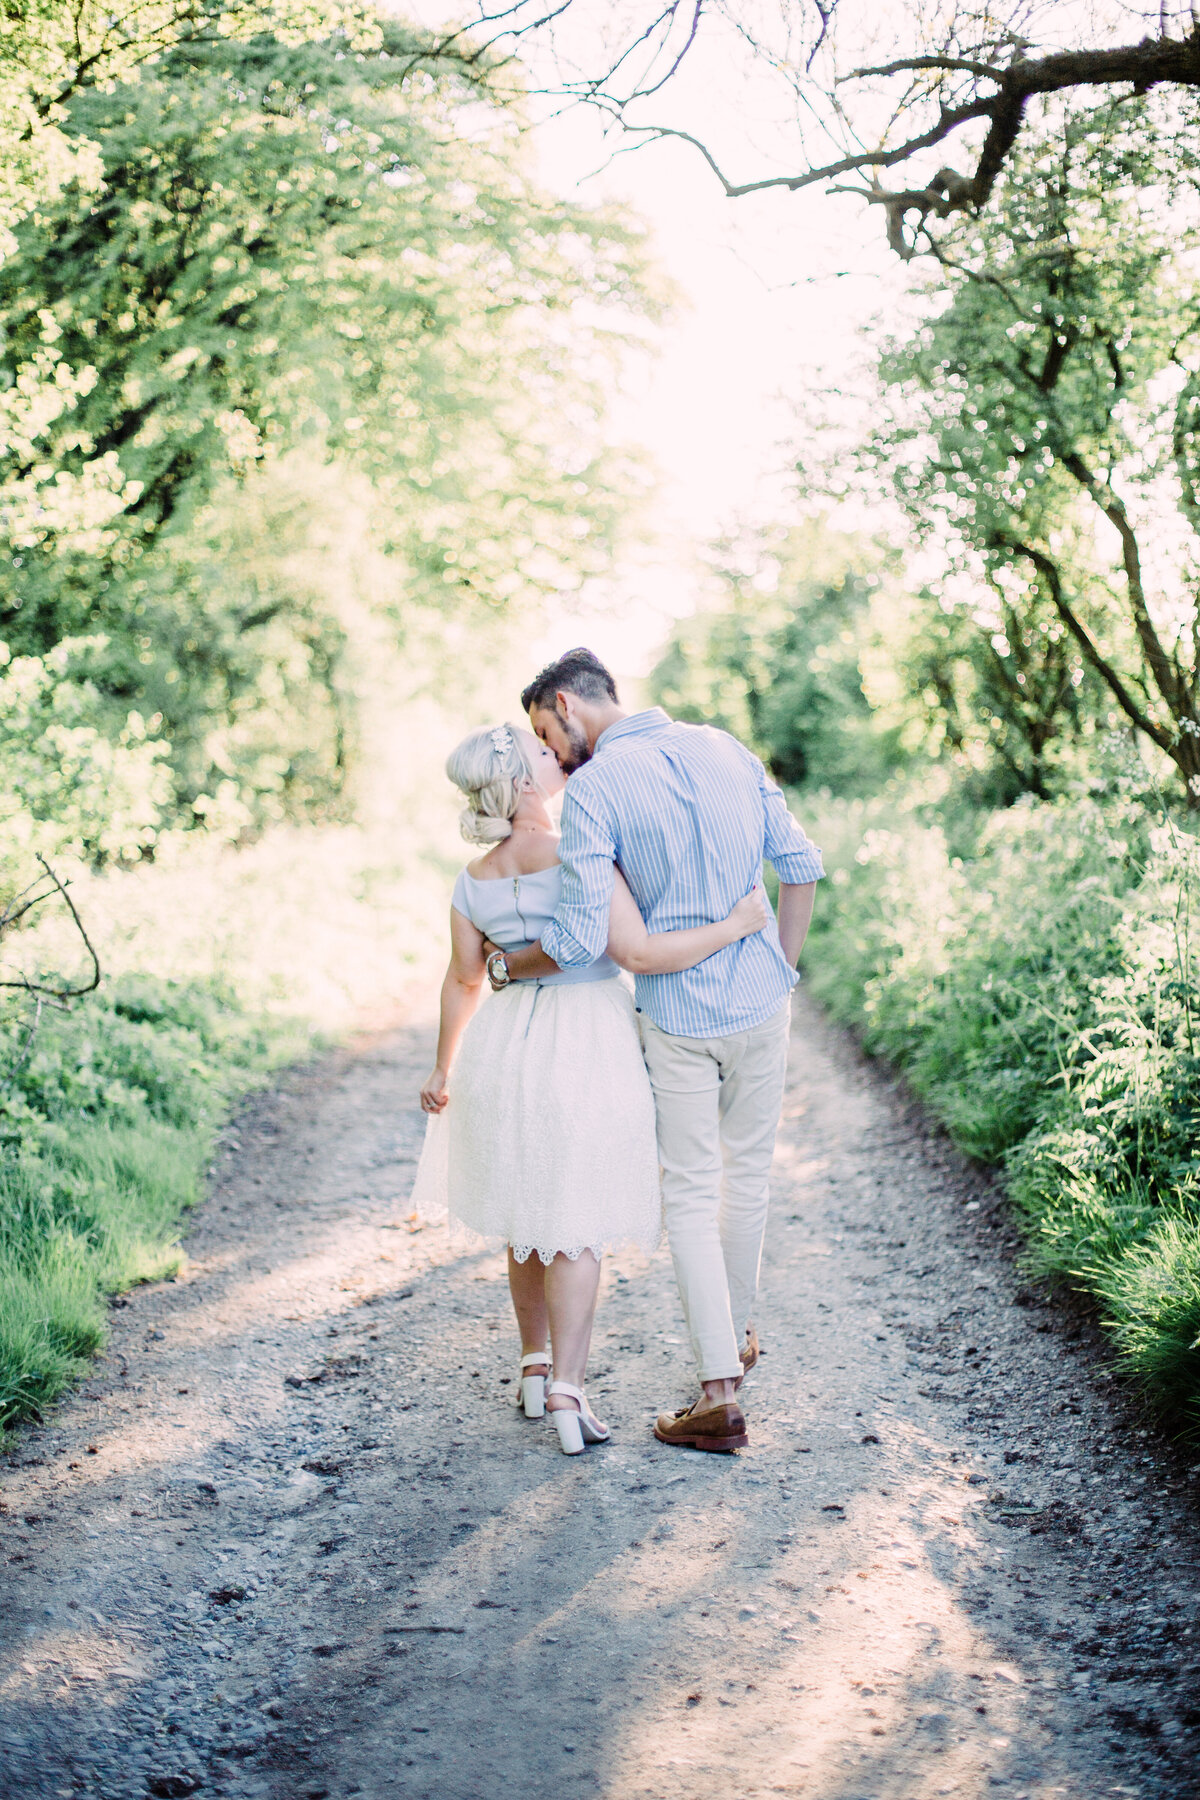 tabithastarkphototyorkshireweddingphotographer-21